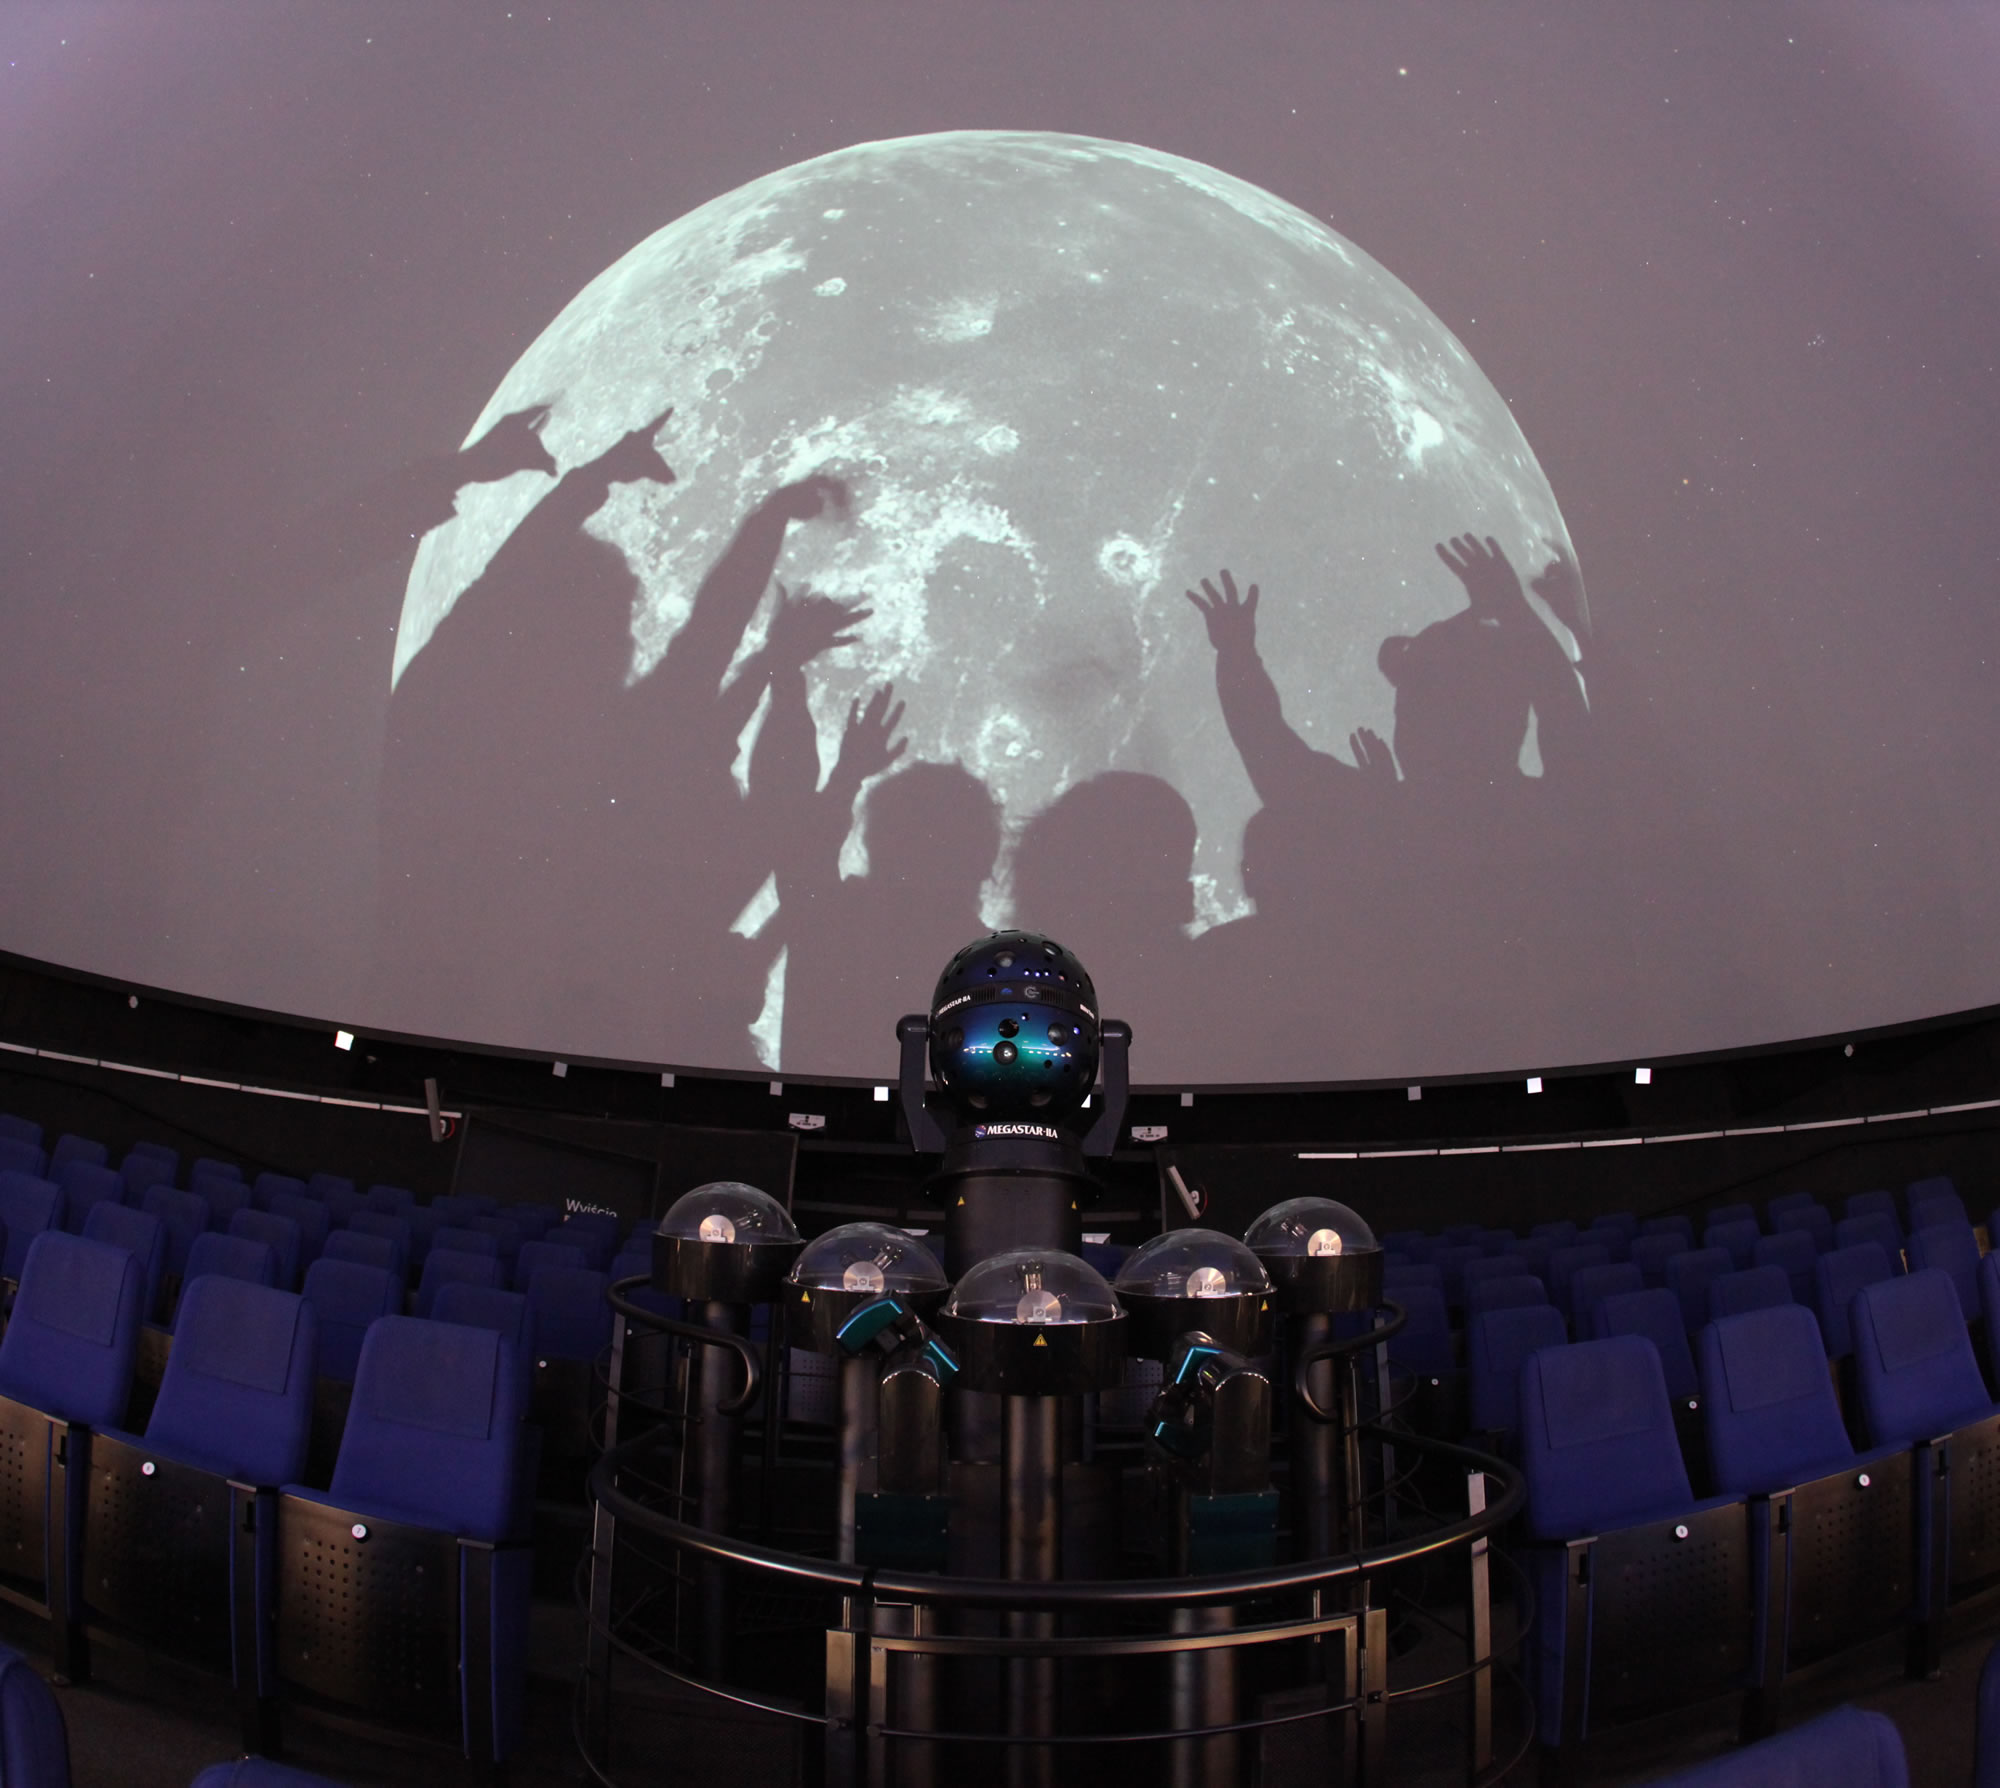 inside Heavens of Copernicus planetarium